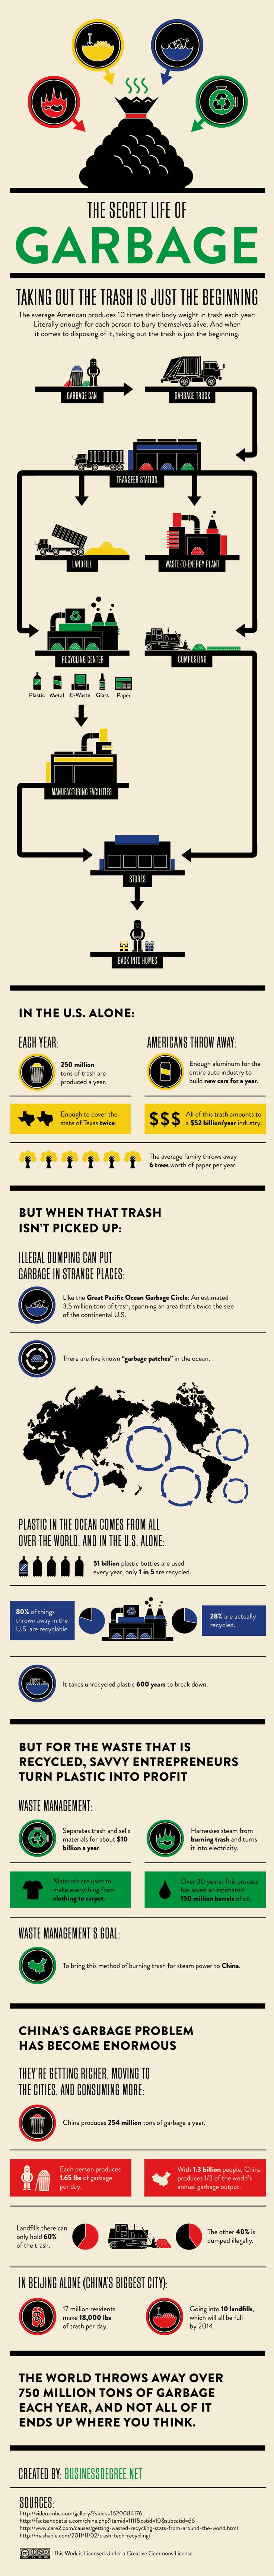 The #secret life of #garbage. #recycling #junk